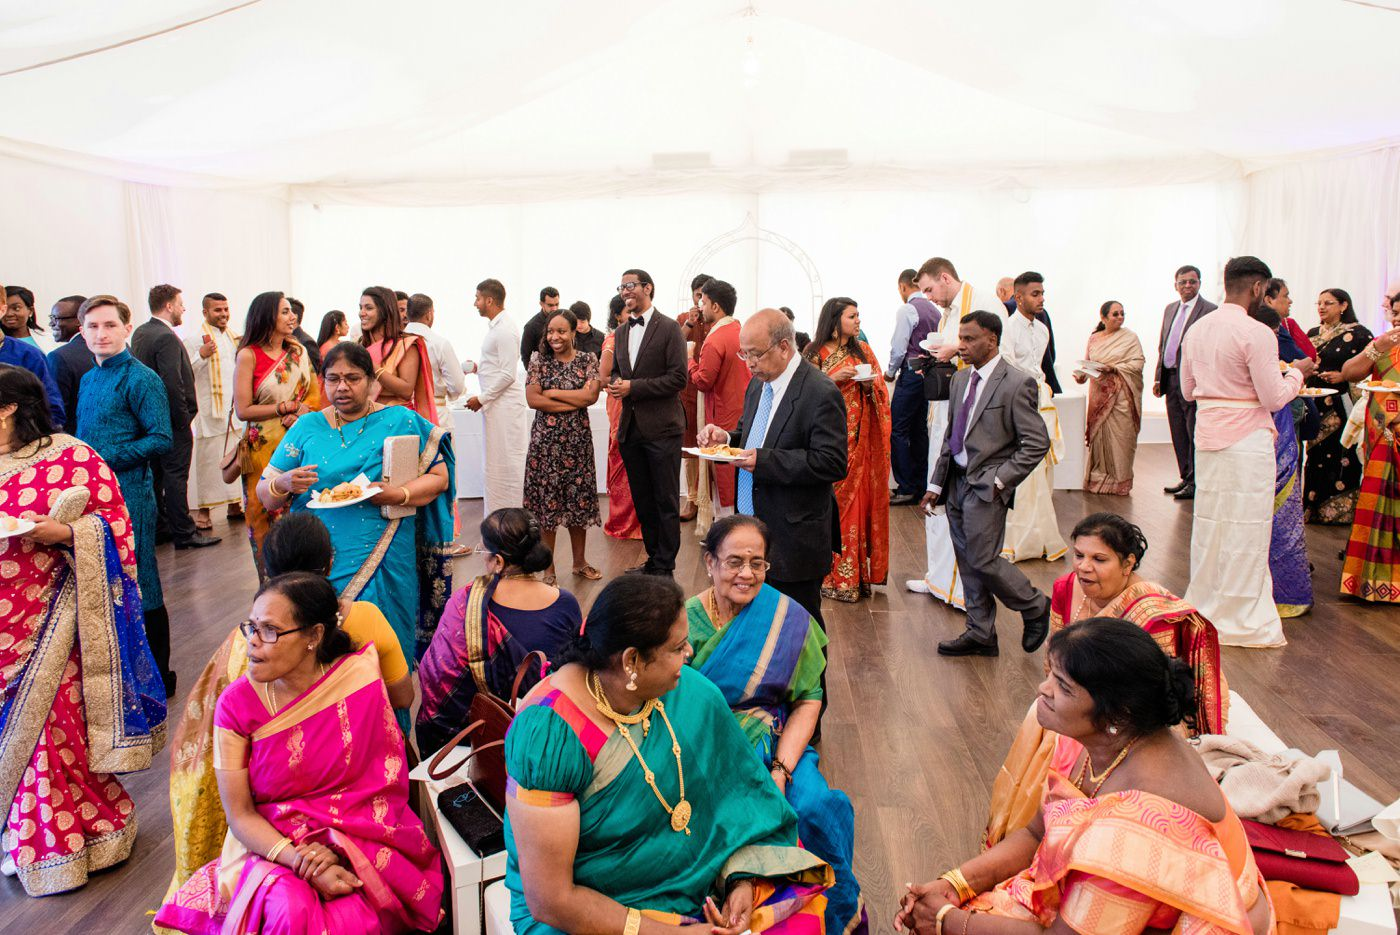 Hindu wedding photography Painshill Park conservatory Surrey